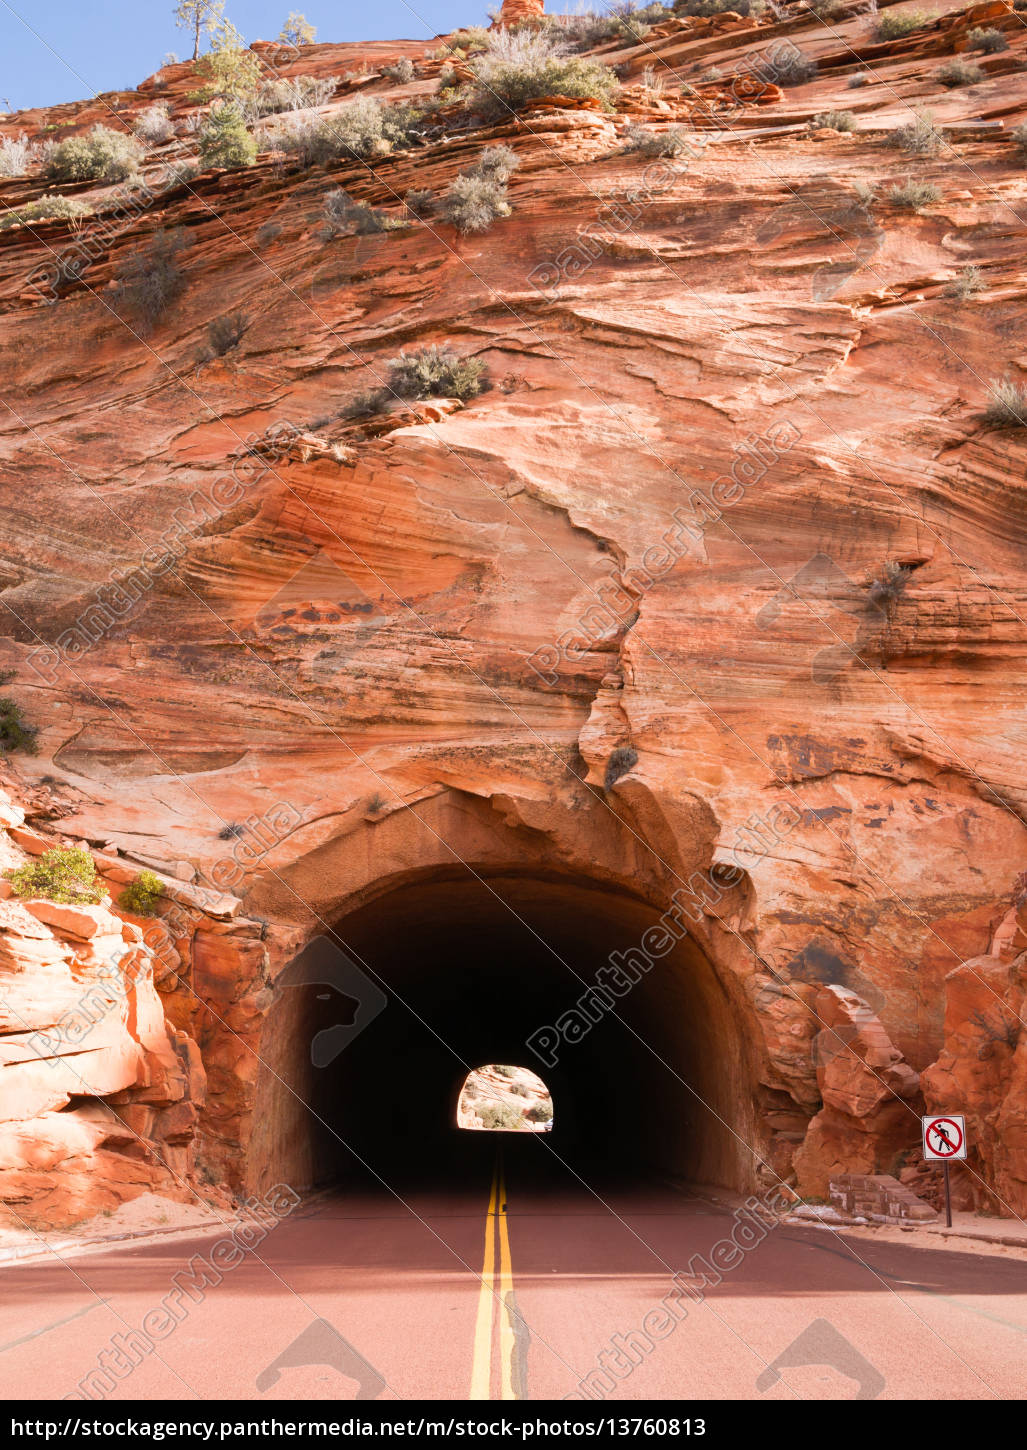 stone, highway, tunnel, red, roadway, zion - 13760813